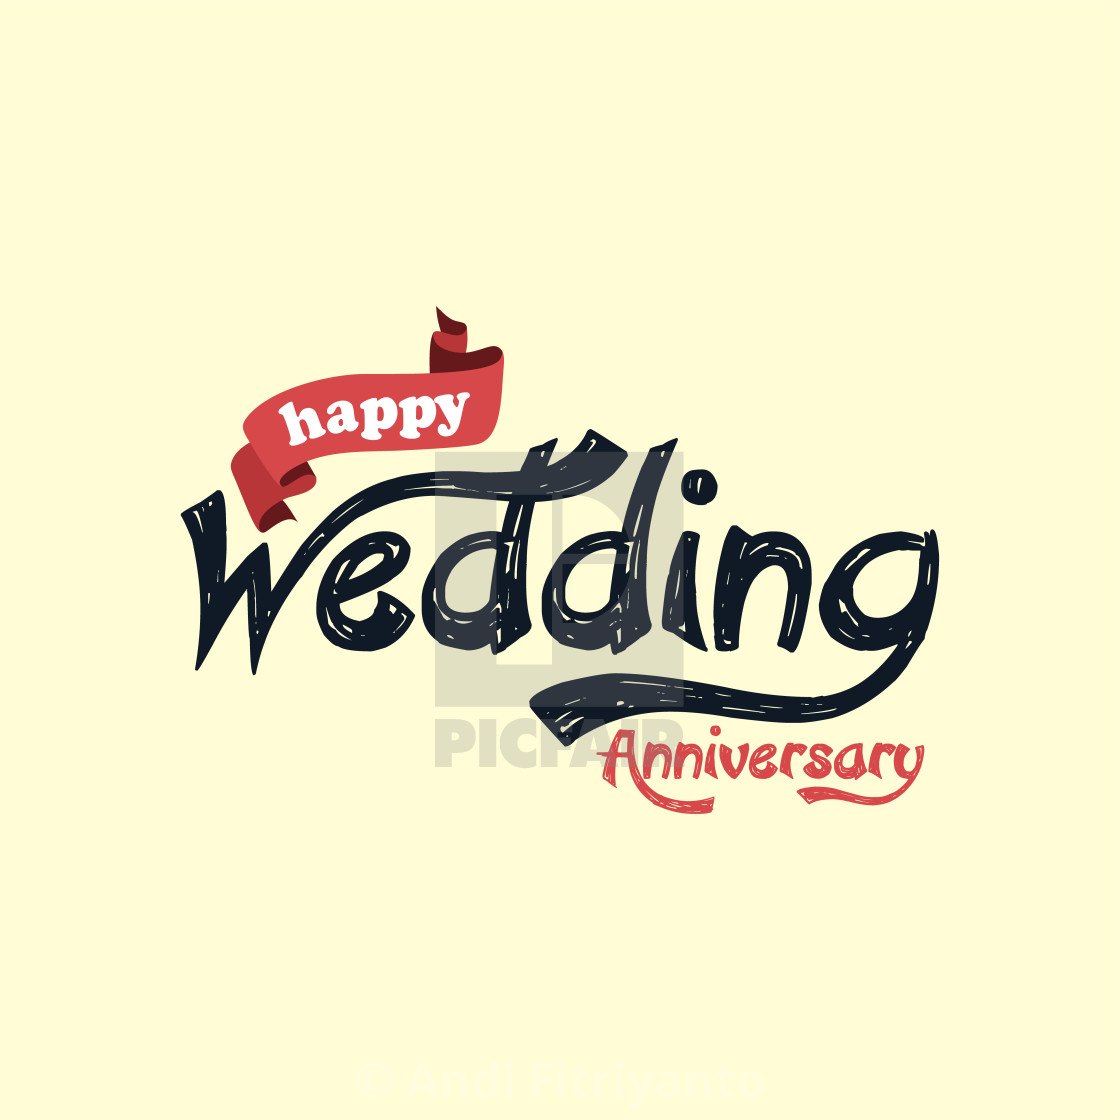 Happy Wedding Anniversary Theme License For 1240 On Picfair